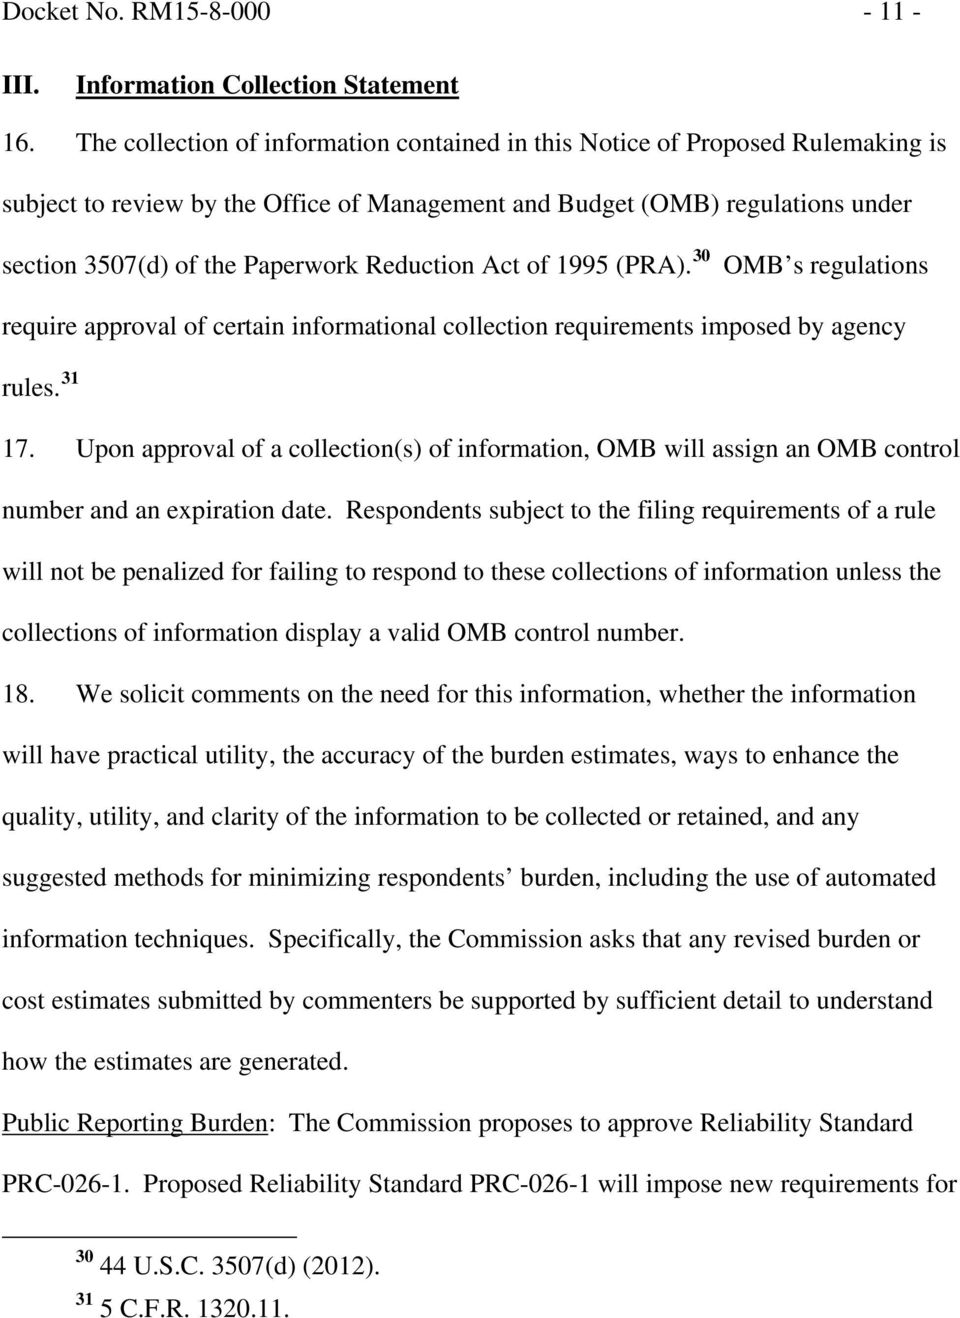 Reduction Act of 1995 (PRA). 30 OMB s regulations require approval of certain informational collection requirements imposed by agency rules. 31 17.